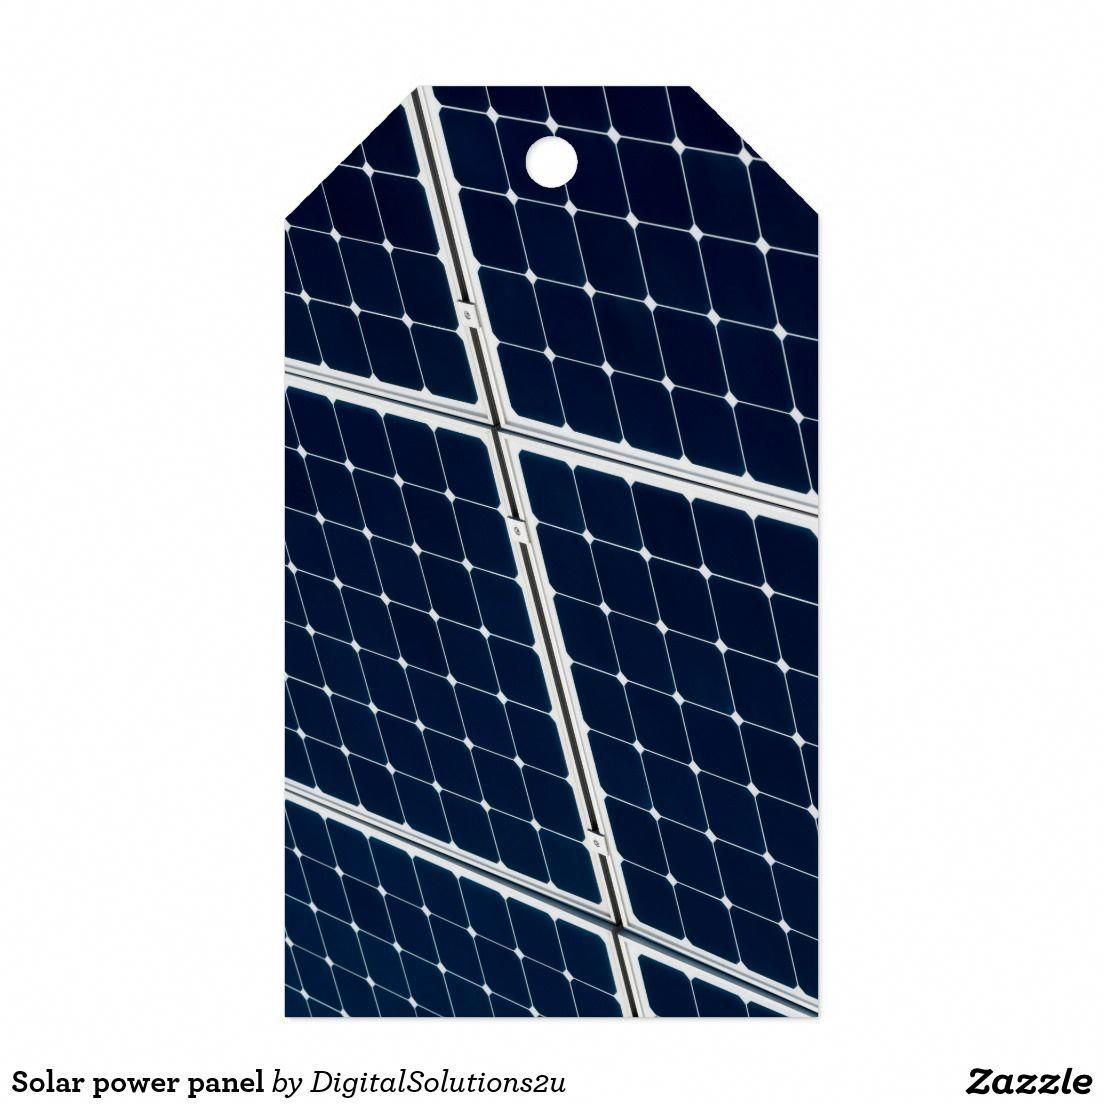 Solarpanels Solarenergy Solarpower Solargenerator Solarpanelkits Solarwaterheater Solarshingles Solarcell Solarpowersyste In 2020 Solar Power Panels Solar Solar Power